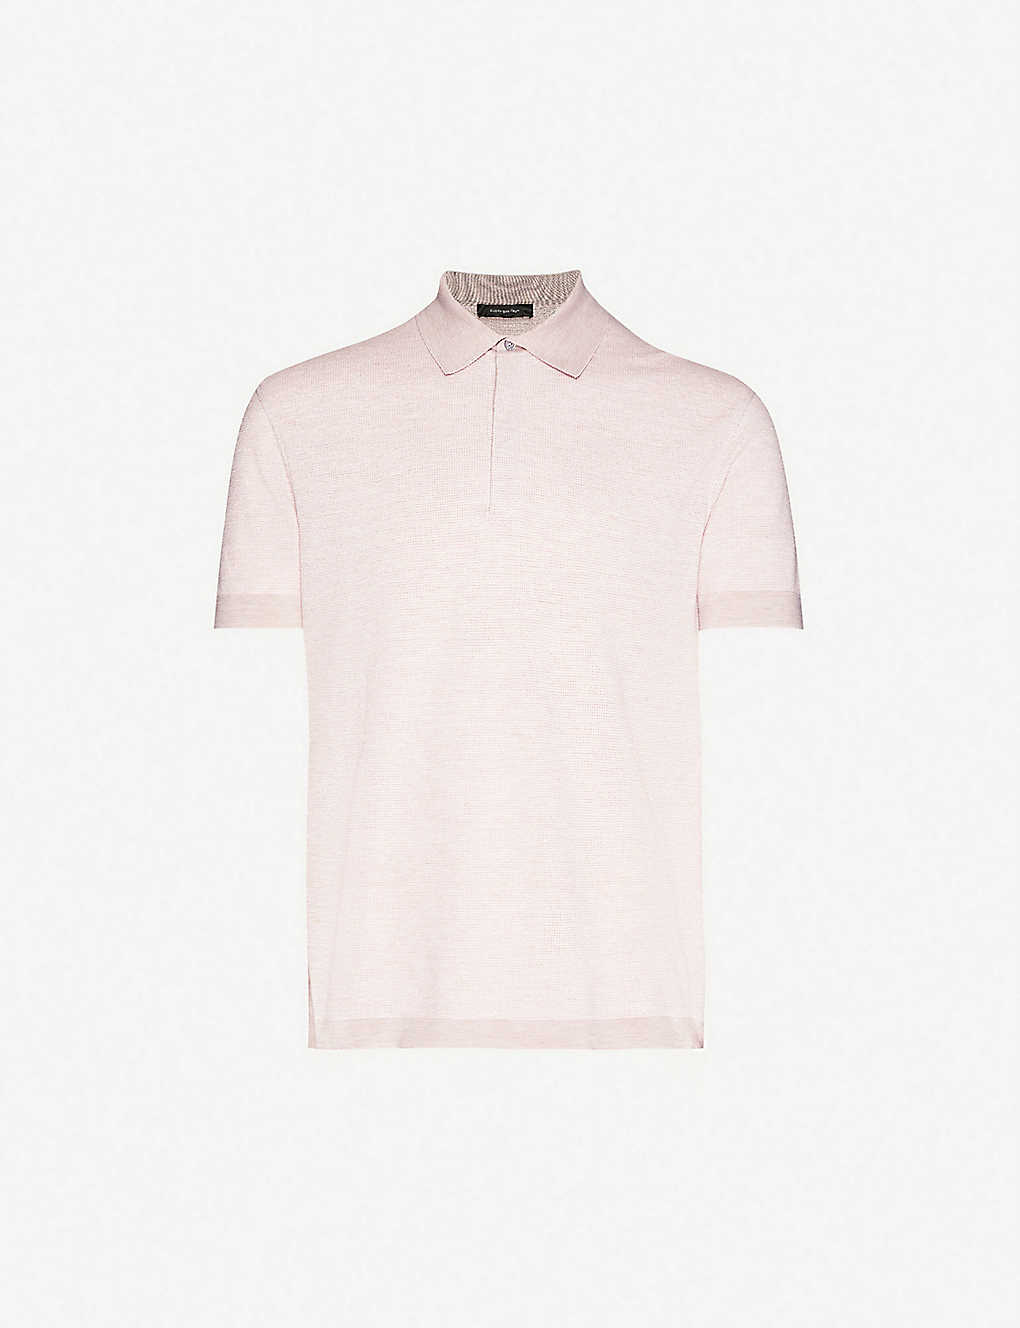 ERMENEGILDO ZEGNA: Classic cotton, linen and silk-blend knitted polo shirt